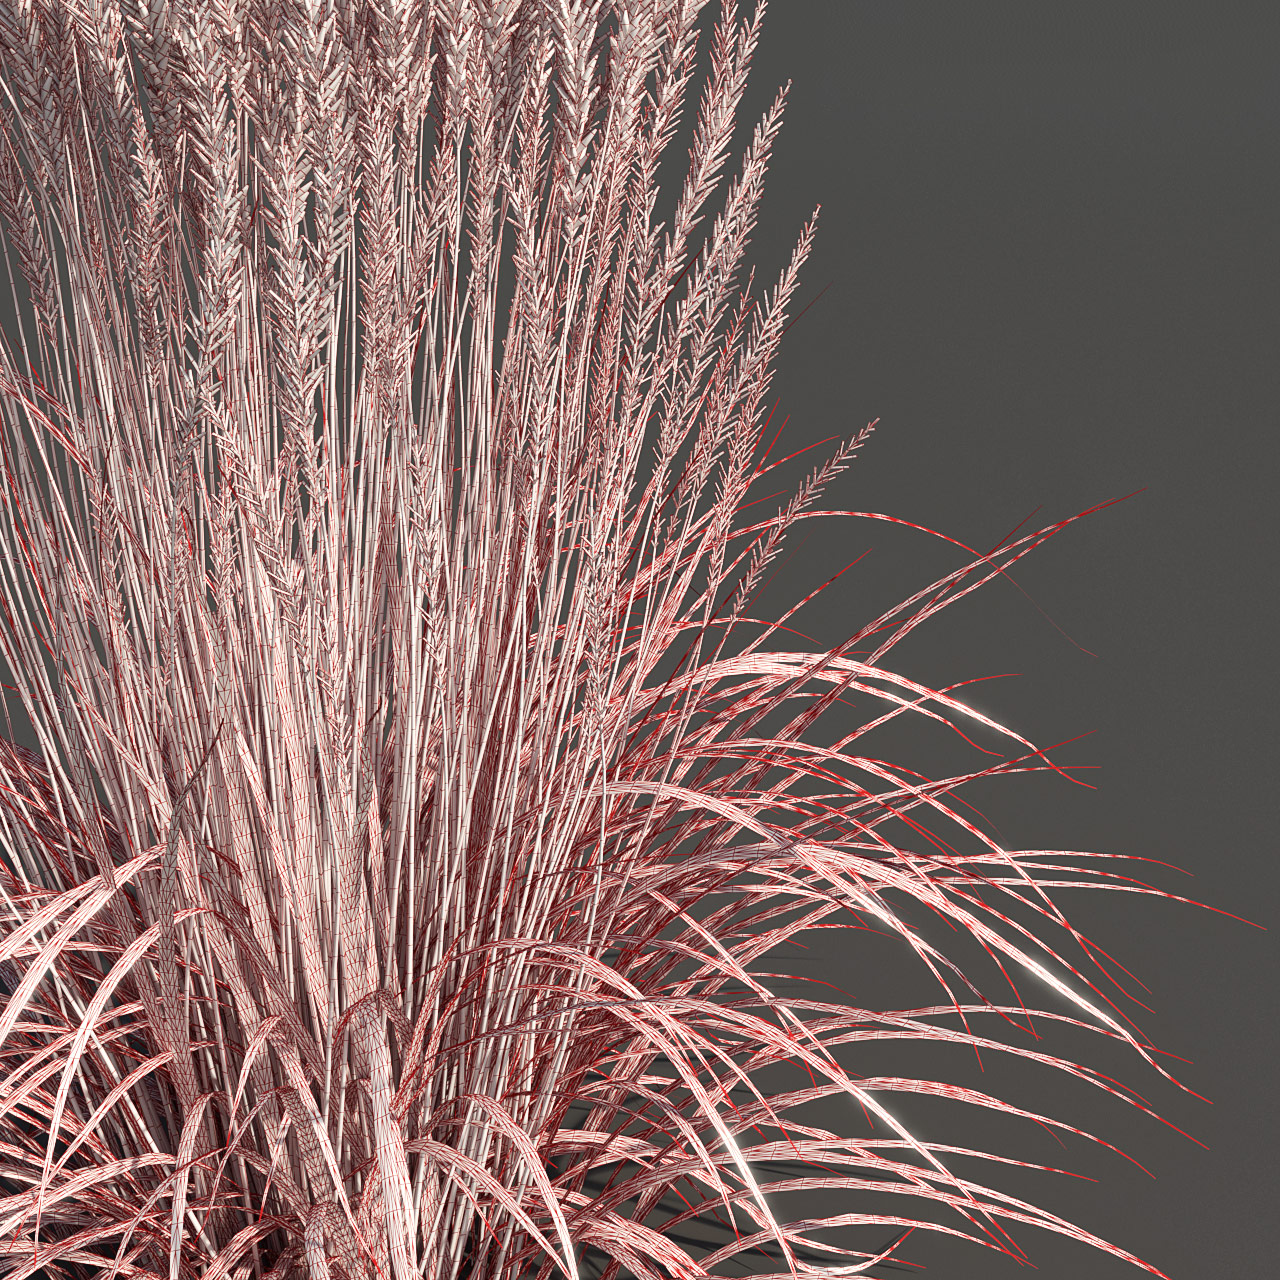 Feather Reed Grass 3D model wireframe -  'Karl Foerster' - Calamagrostis acutiflora